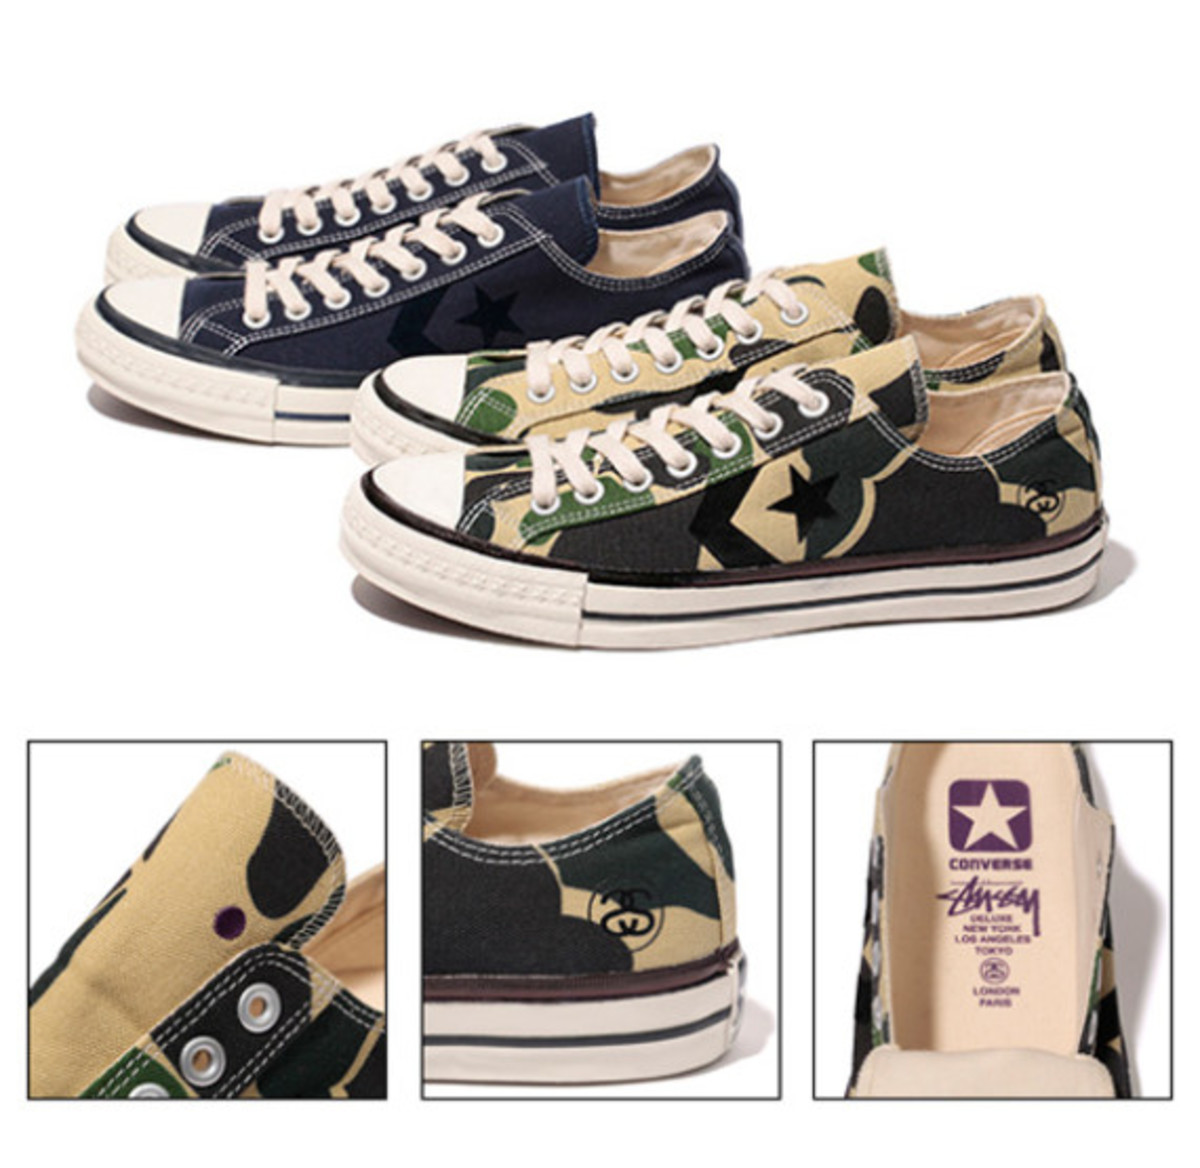 620a393fd7a3 Stussy Deluxe x CONVERSE CX-Pro Ox - Summer 2013 - Freshness Mag